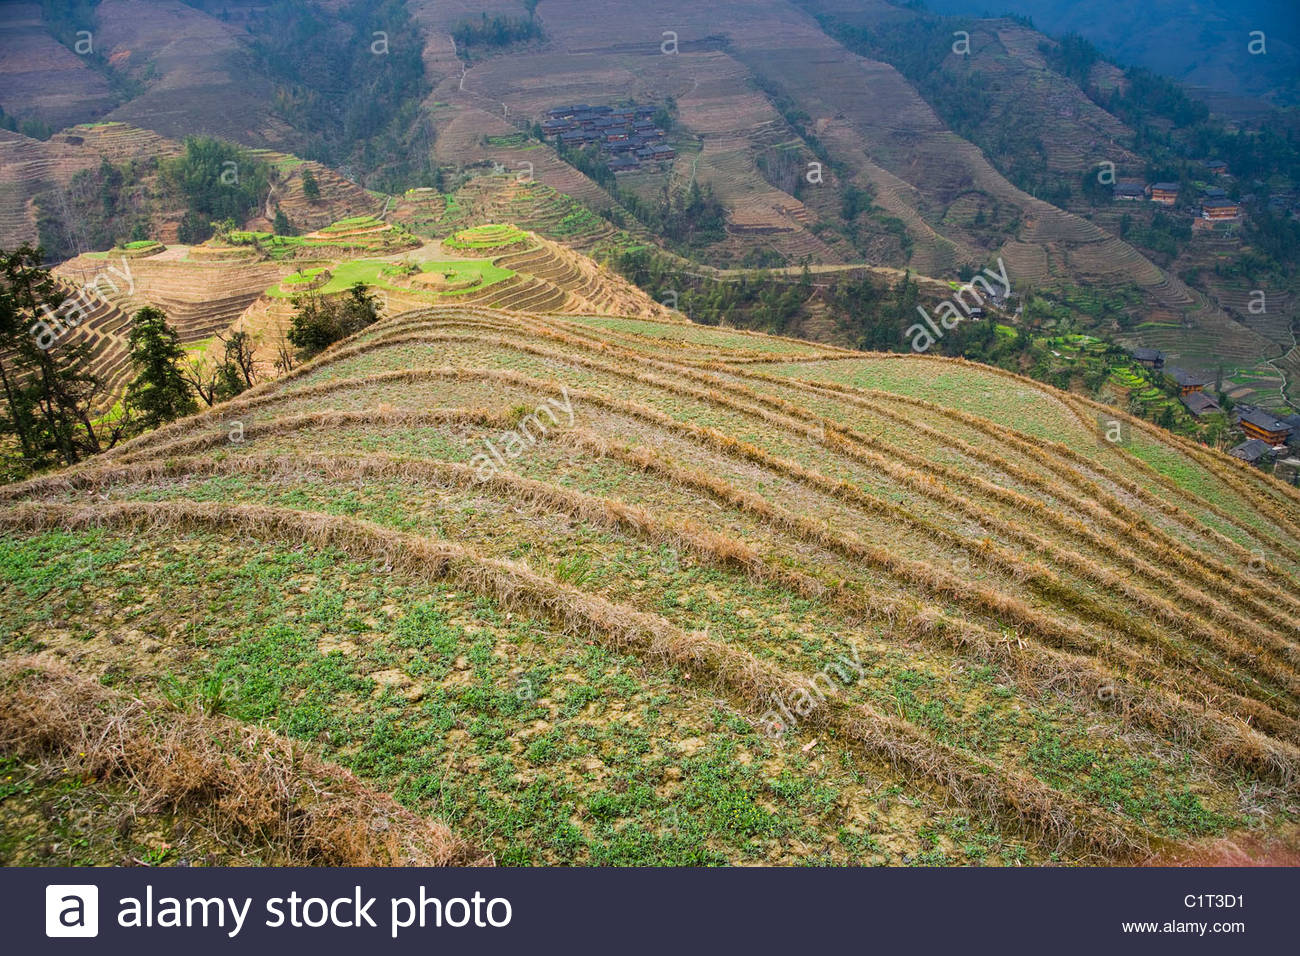 Dragons Backbone Rice Terraces, Longji Titian, Guilin, Guangxi, China - Stock Image